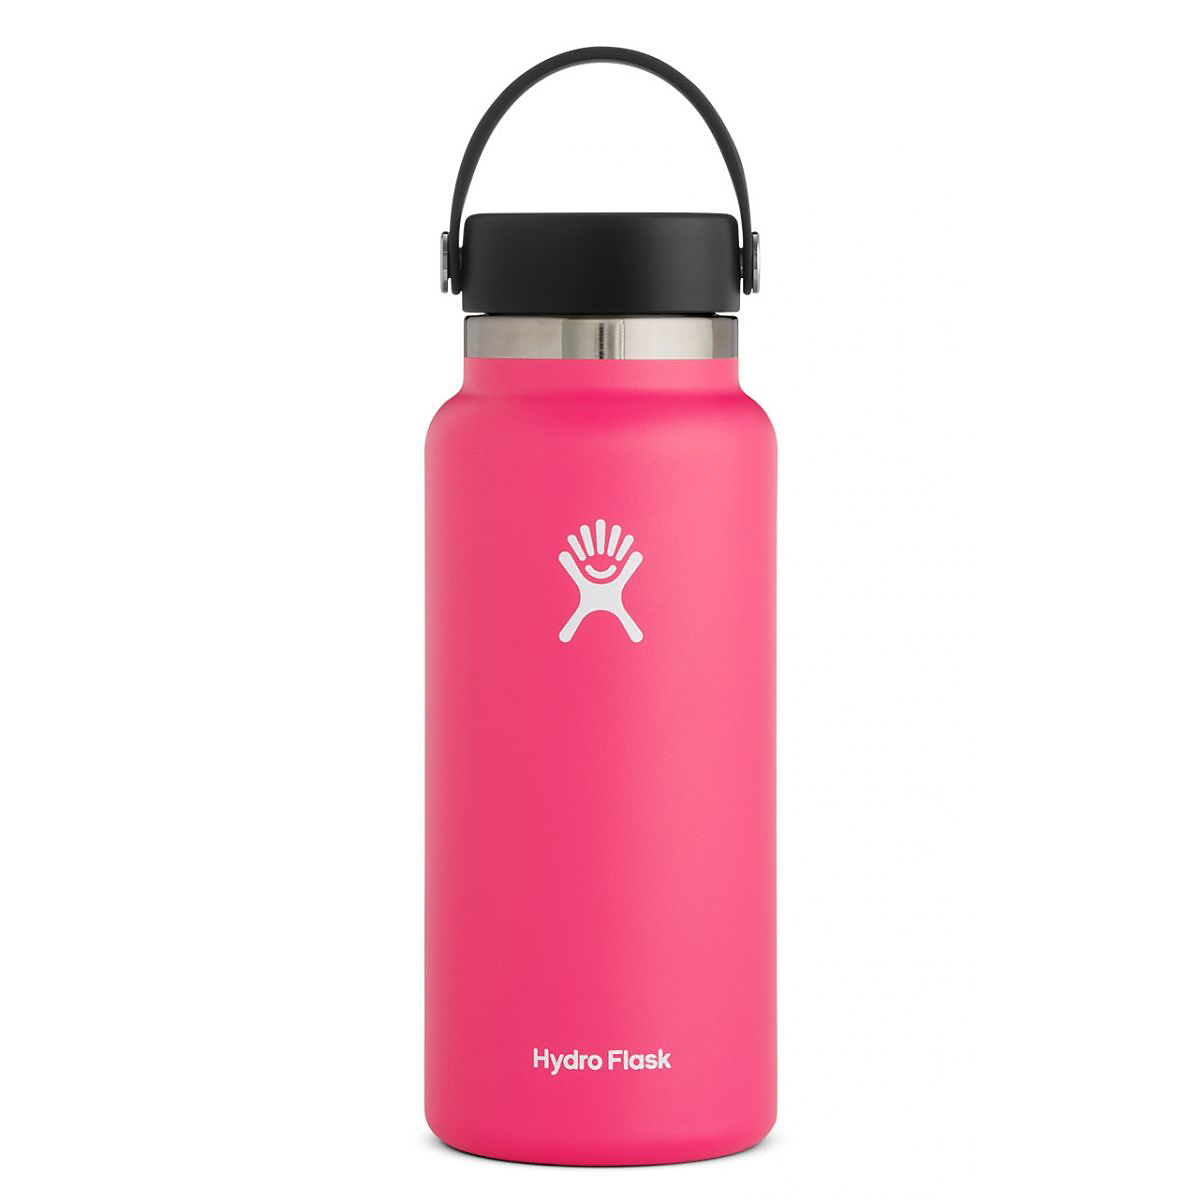 Hydro Flask 33 oz Wide Mouth Bottle - Color: Watermelon - Size: One Size, Watermelon, large, image 1